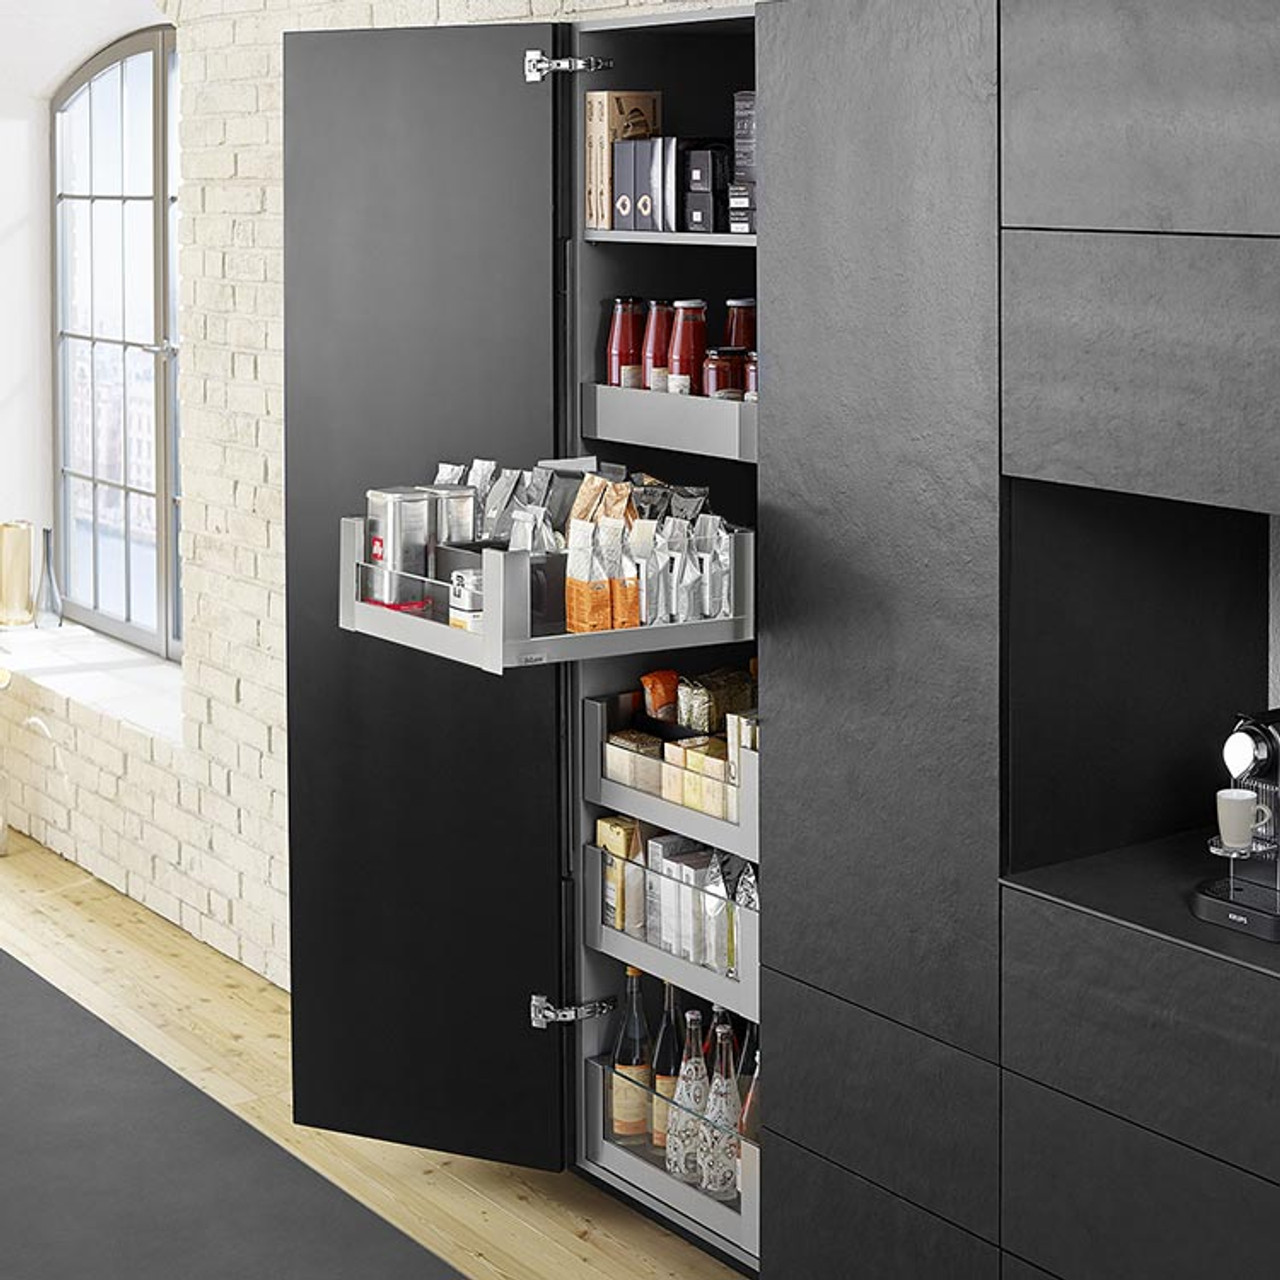 LEGRABOX free SPACE TOWER with glass design elements, see your contents at a glance